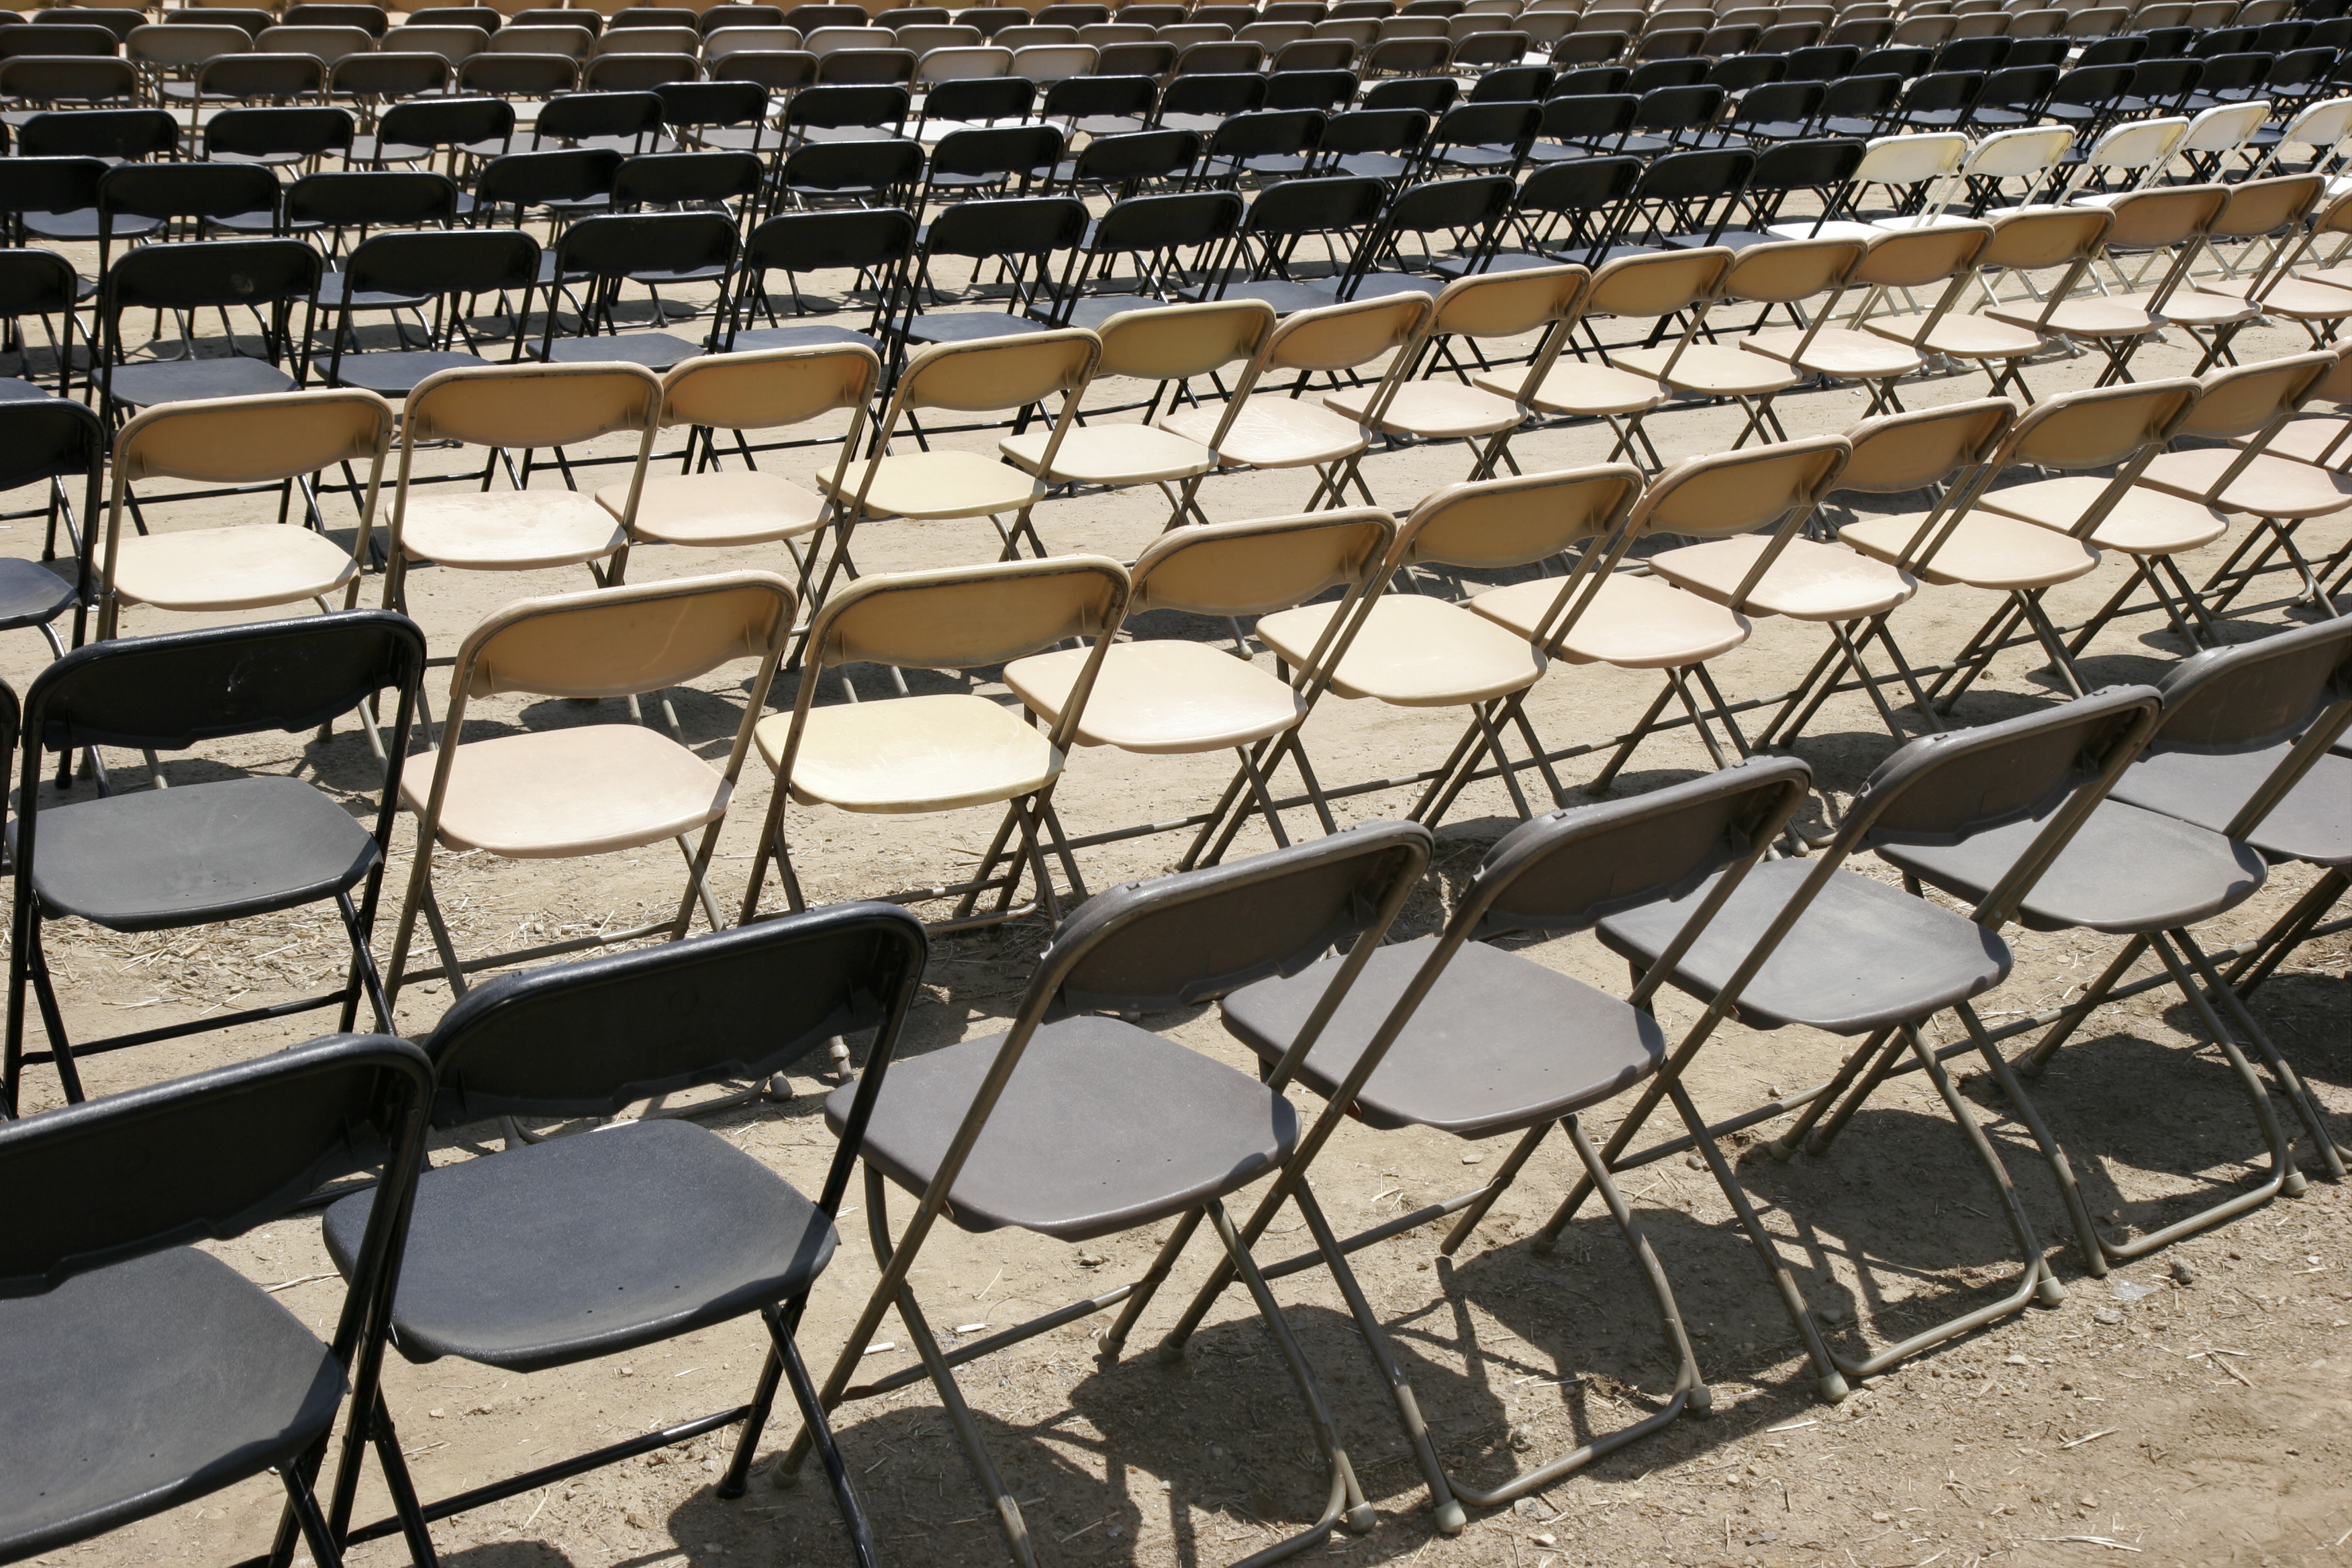 Rows of empty folding chairs at Porter County Fair.